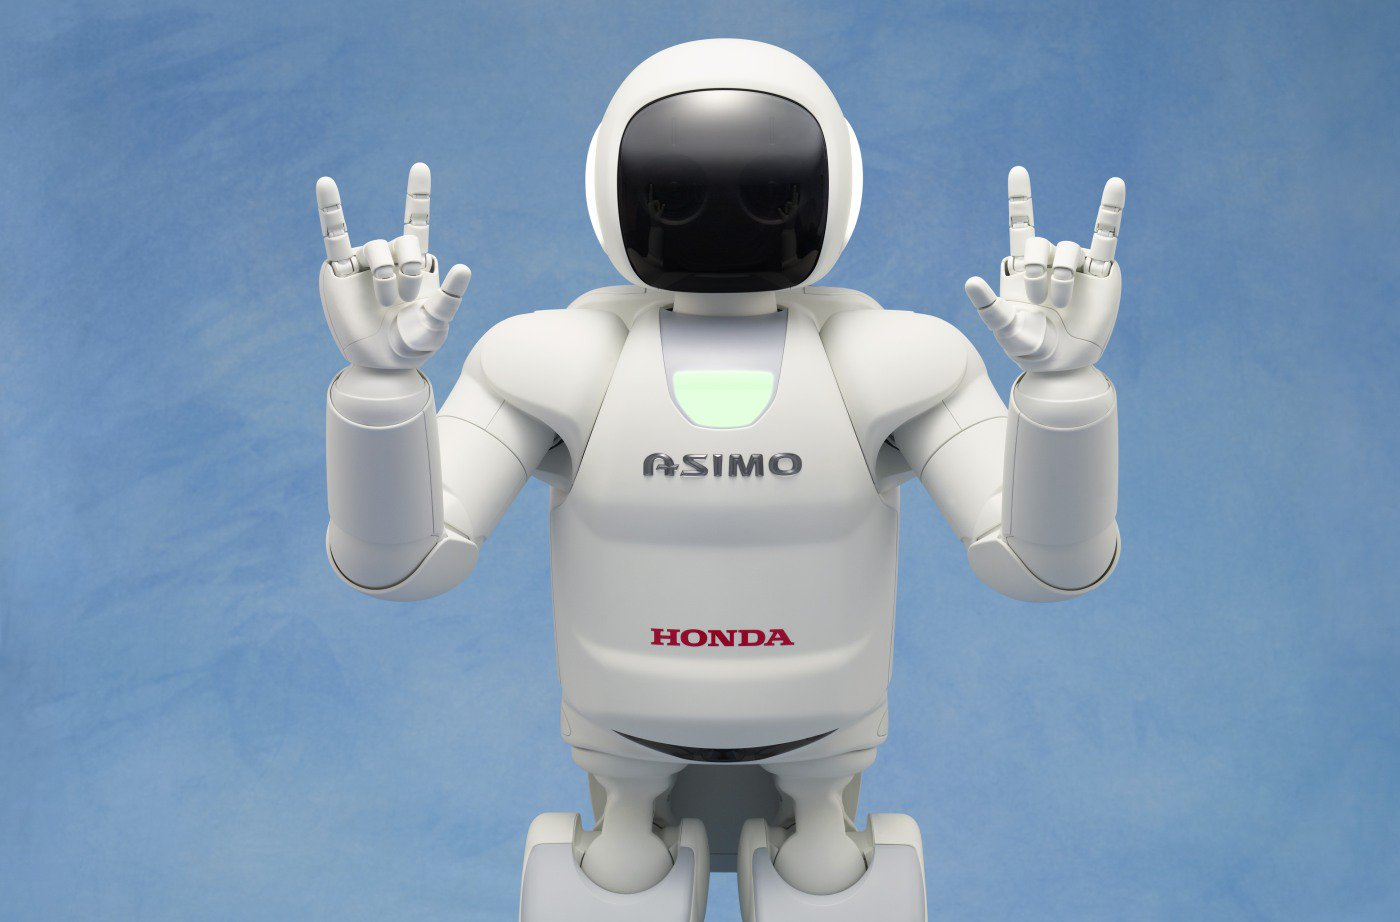 Honda stops the development of biped robots Asimo